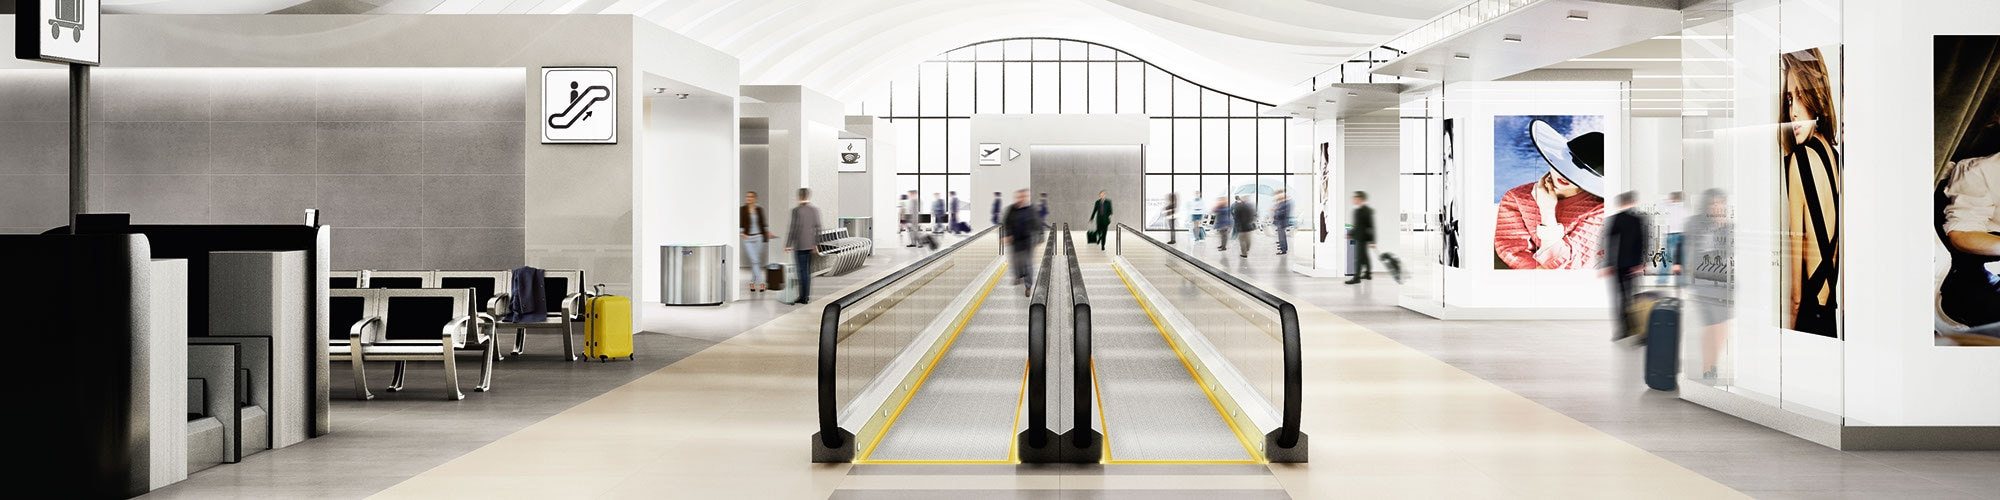 A large airport corridor with two different colors of large format tile on the floor, both monochromatic and chic